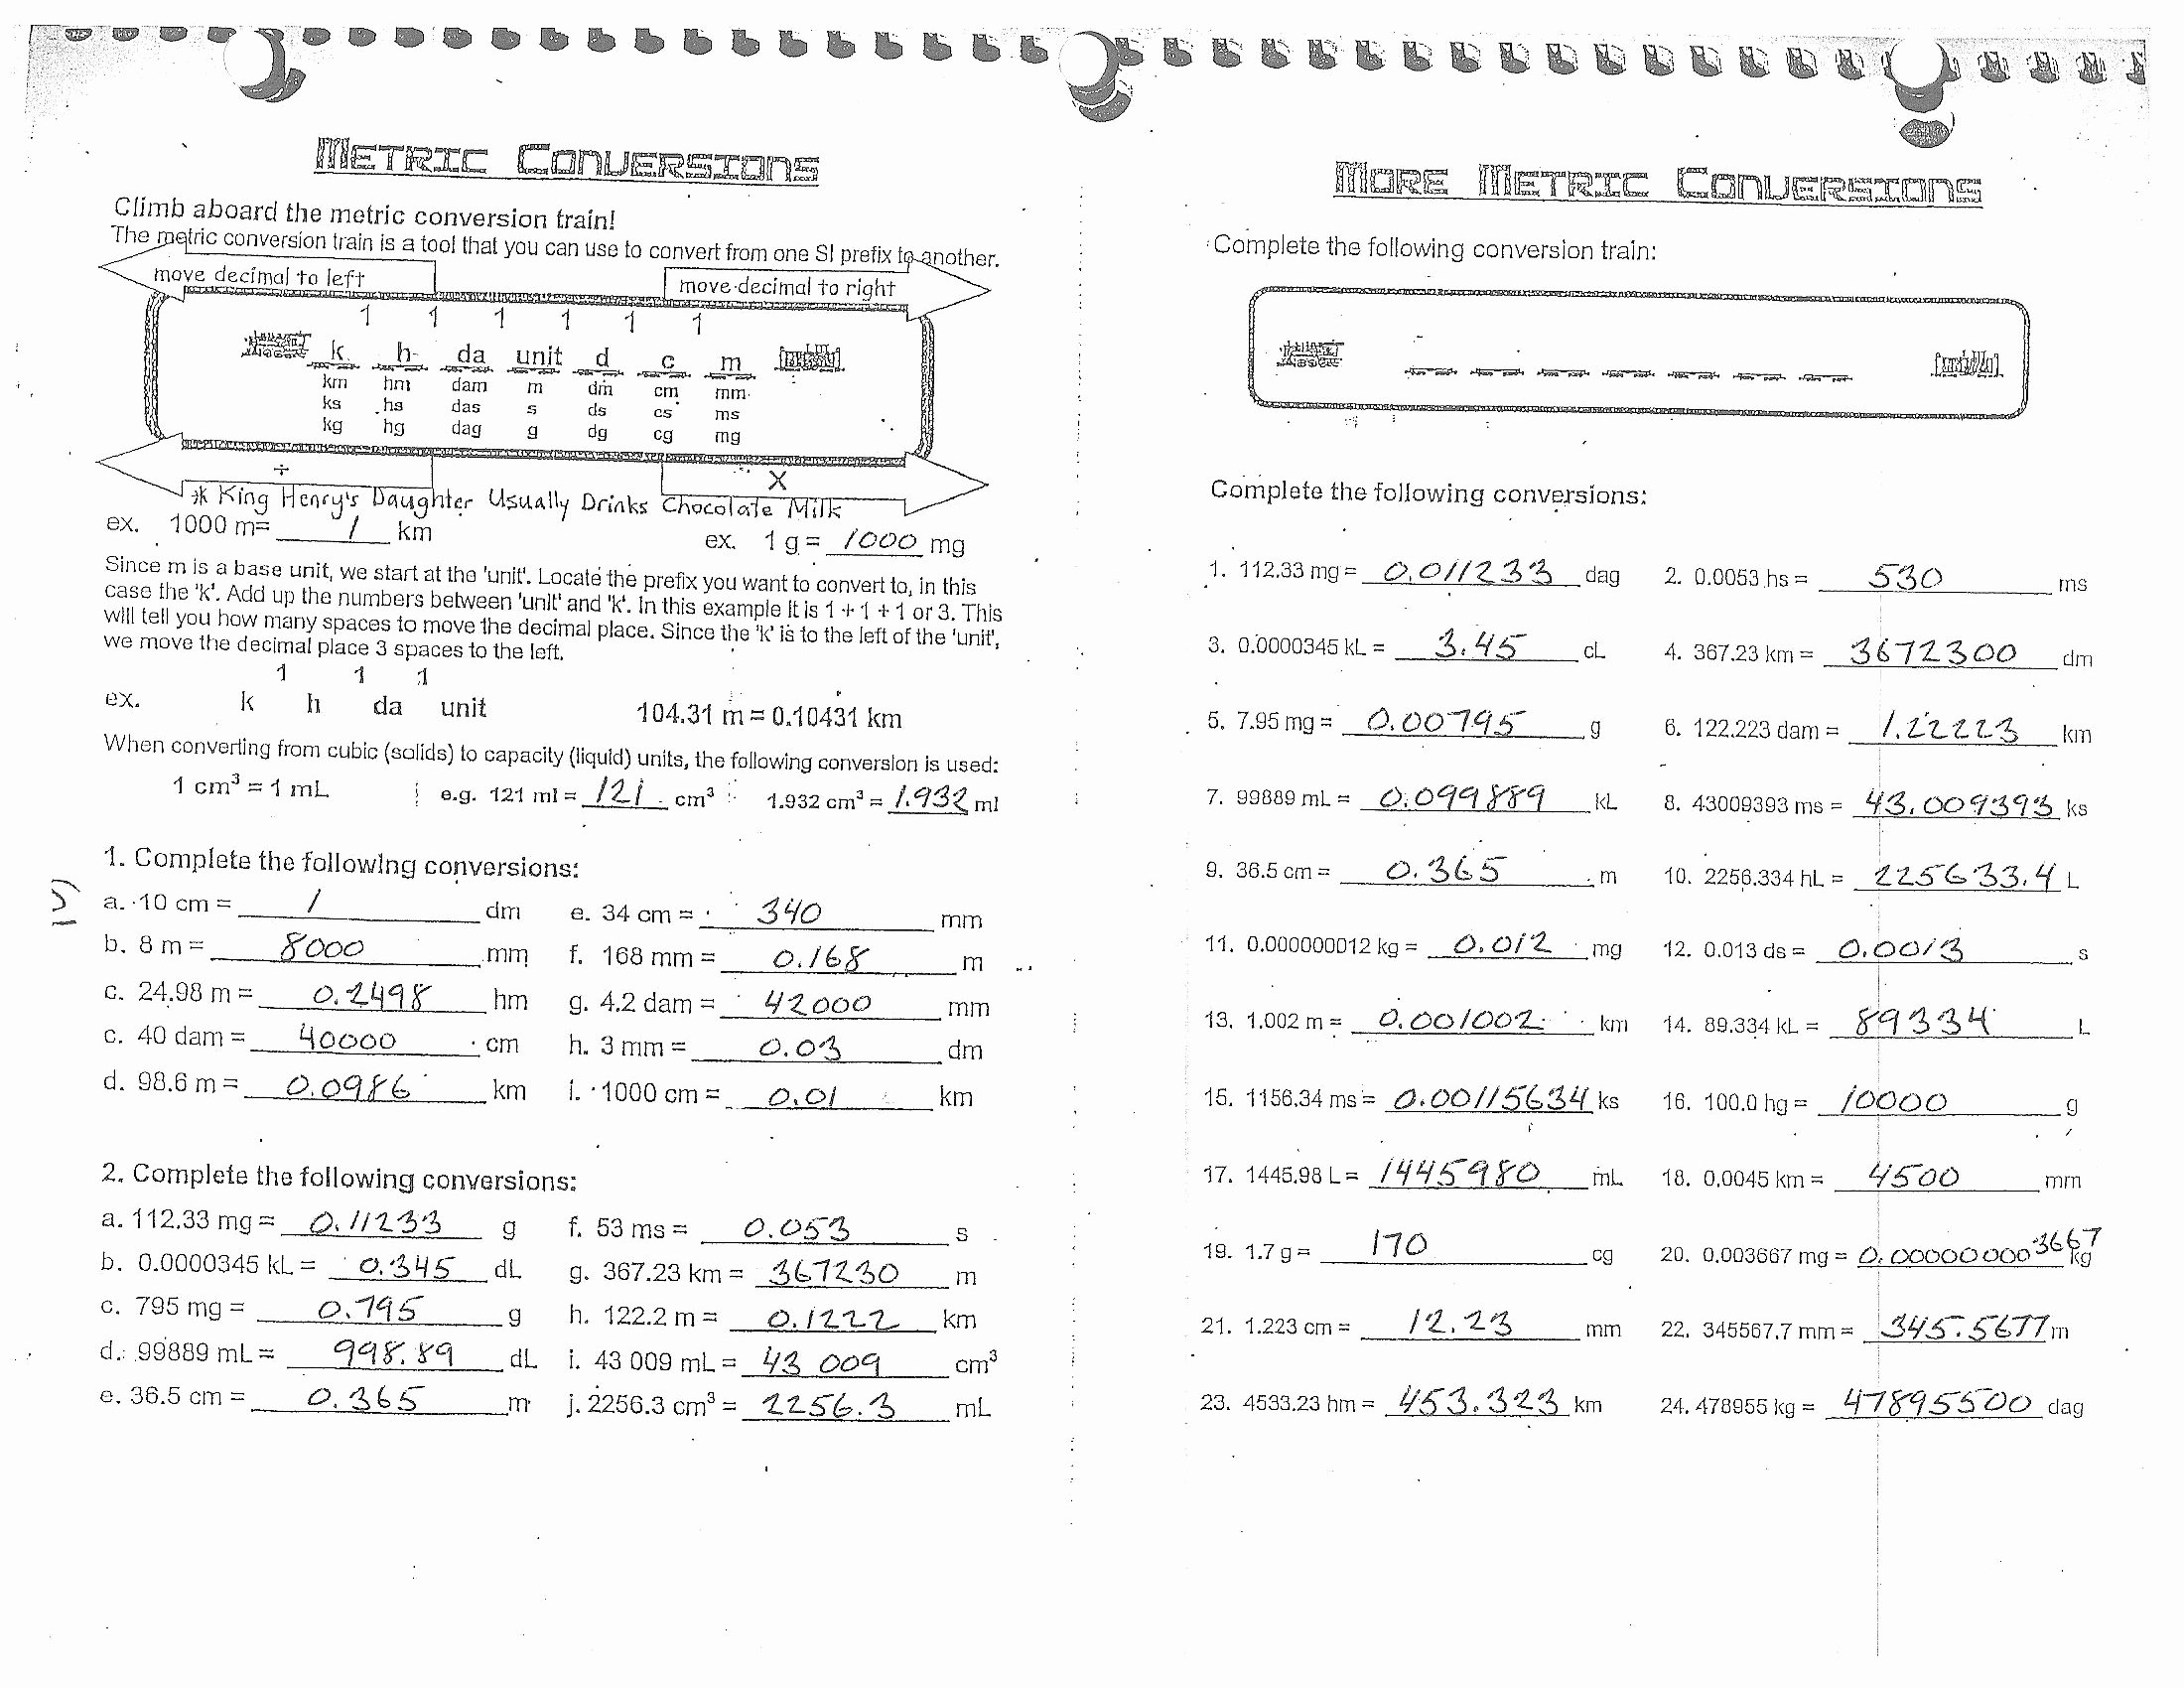 Unit Conversion Worksheet Chemistry Fresh Chemistry Metric Conversion Worksheet with Answers the